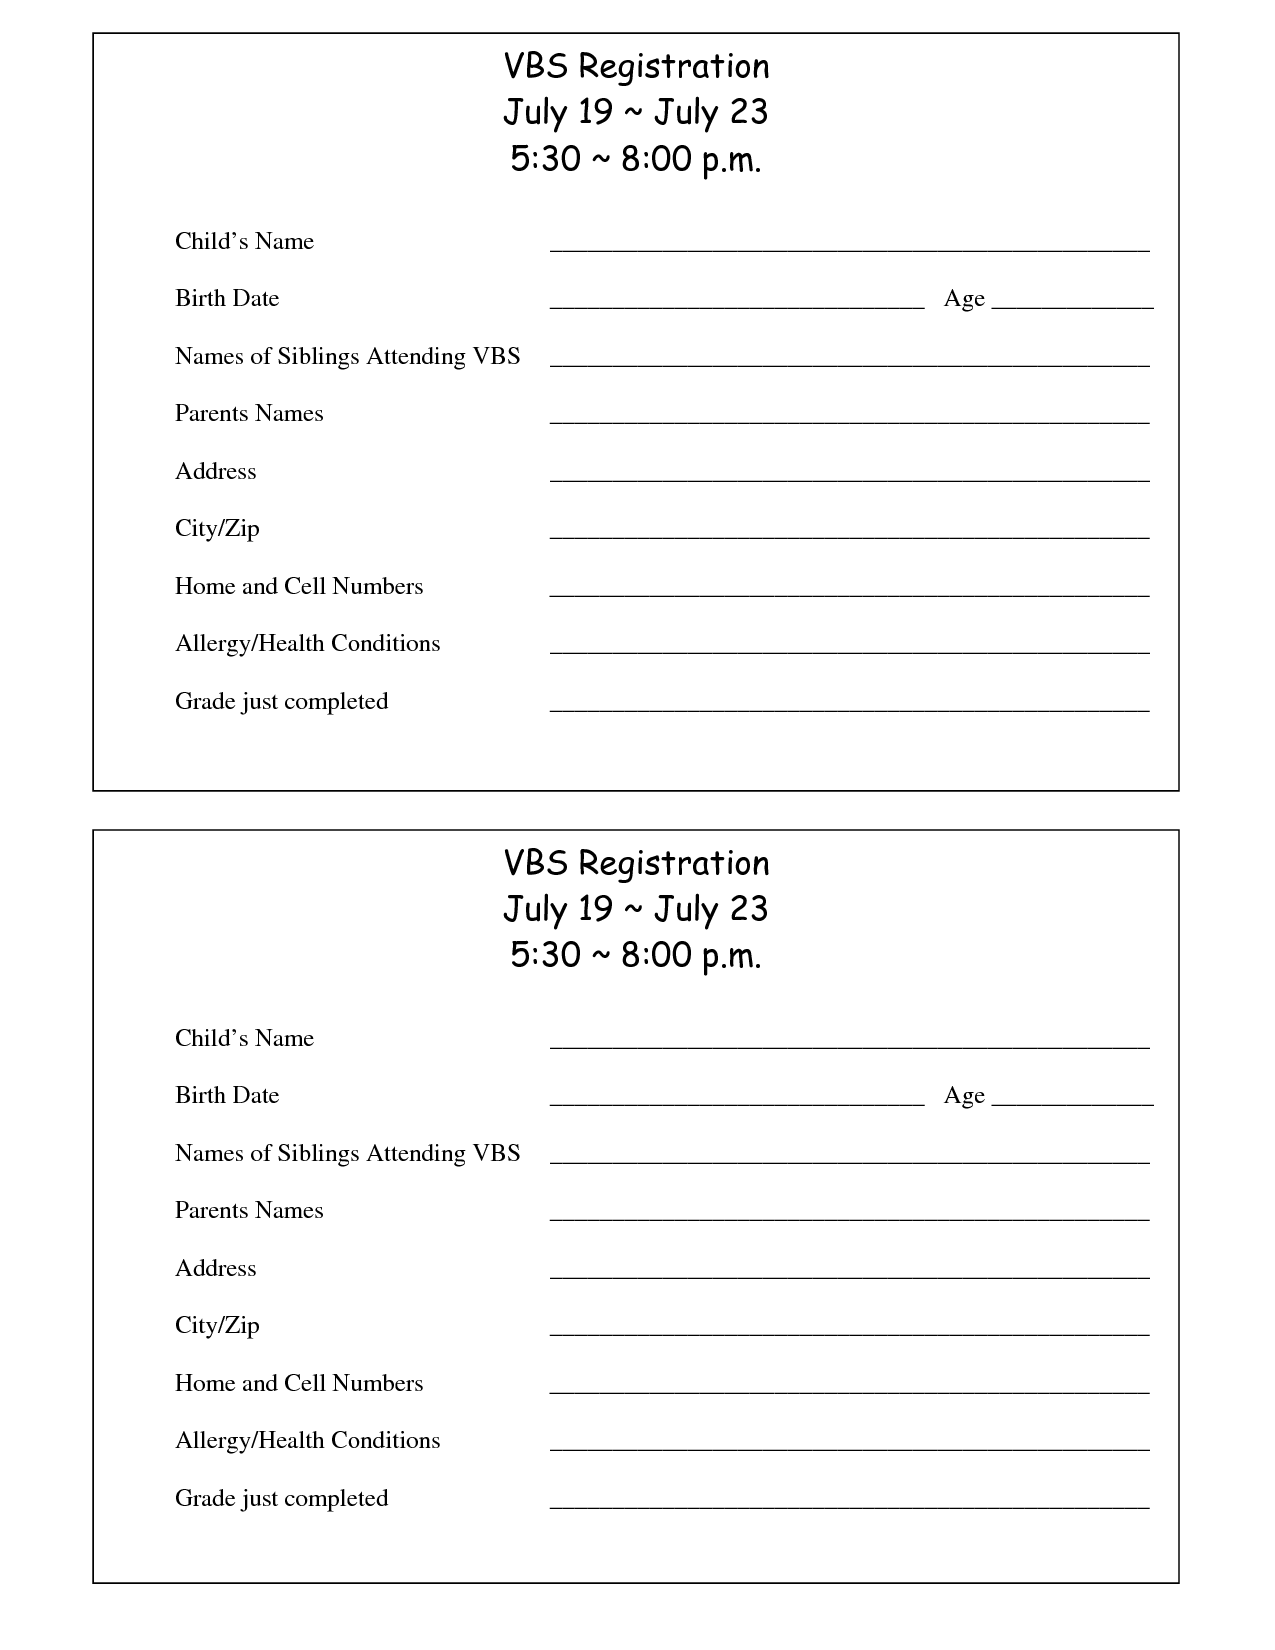 Best 25+ Registration form ideas on Pinterest | Web forms, Sign up ...